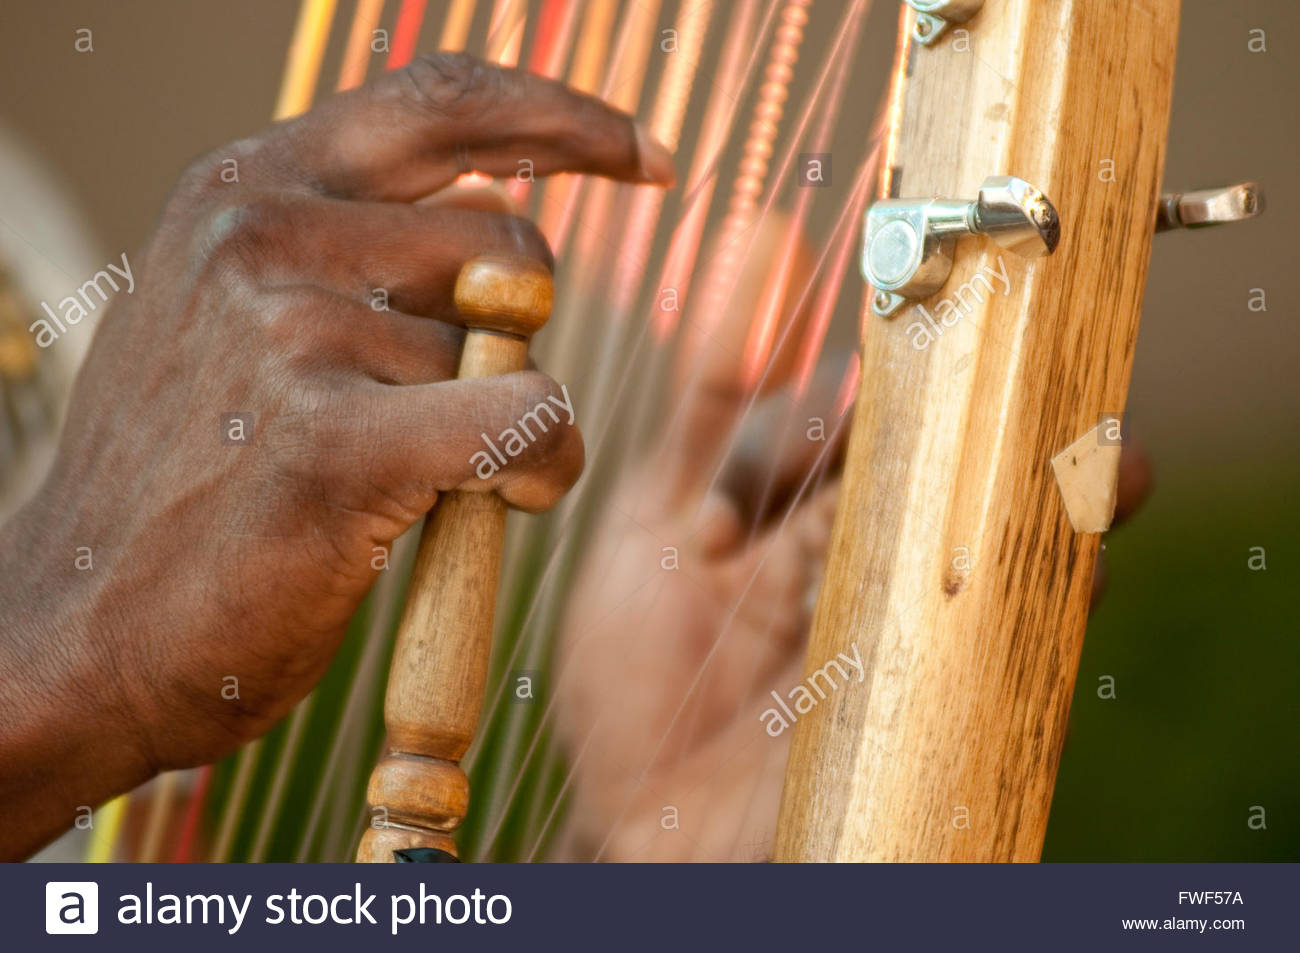 The player plucks the strings of a kora whilts holding on to the hand post. - Stock Image